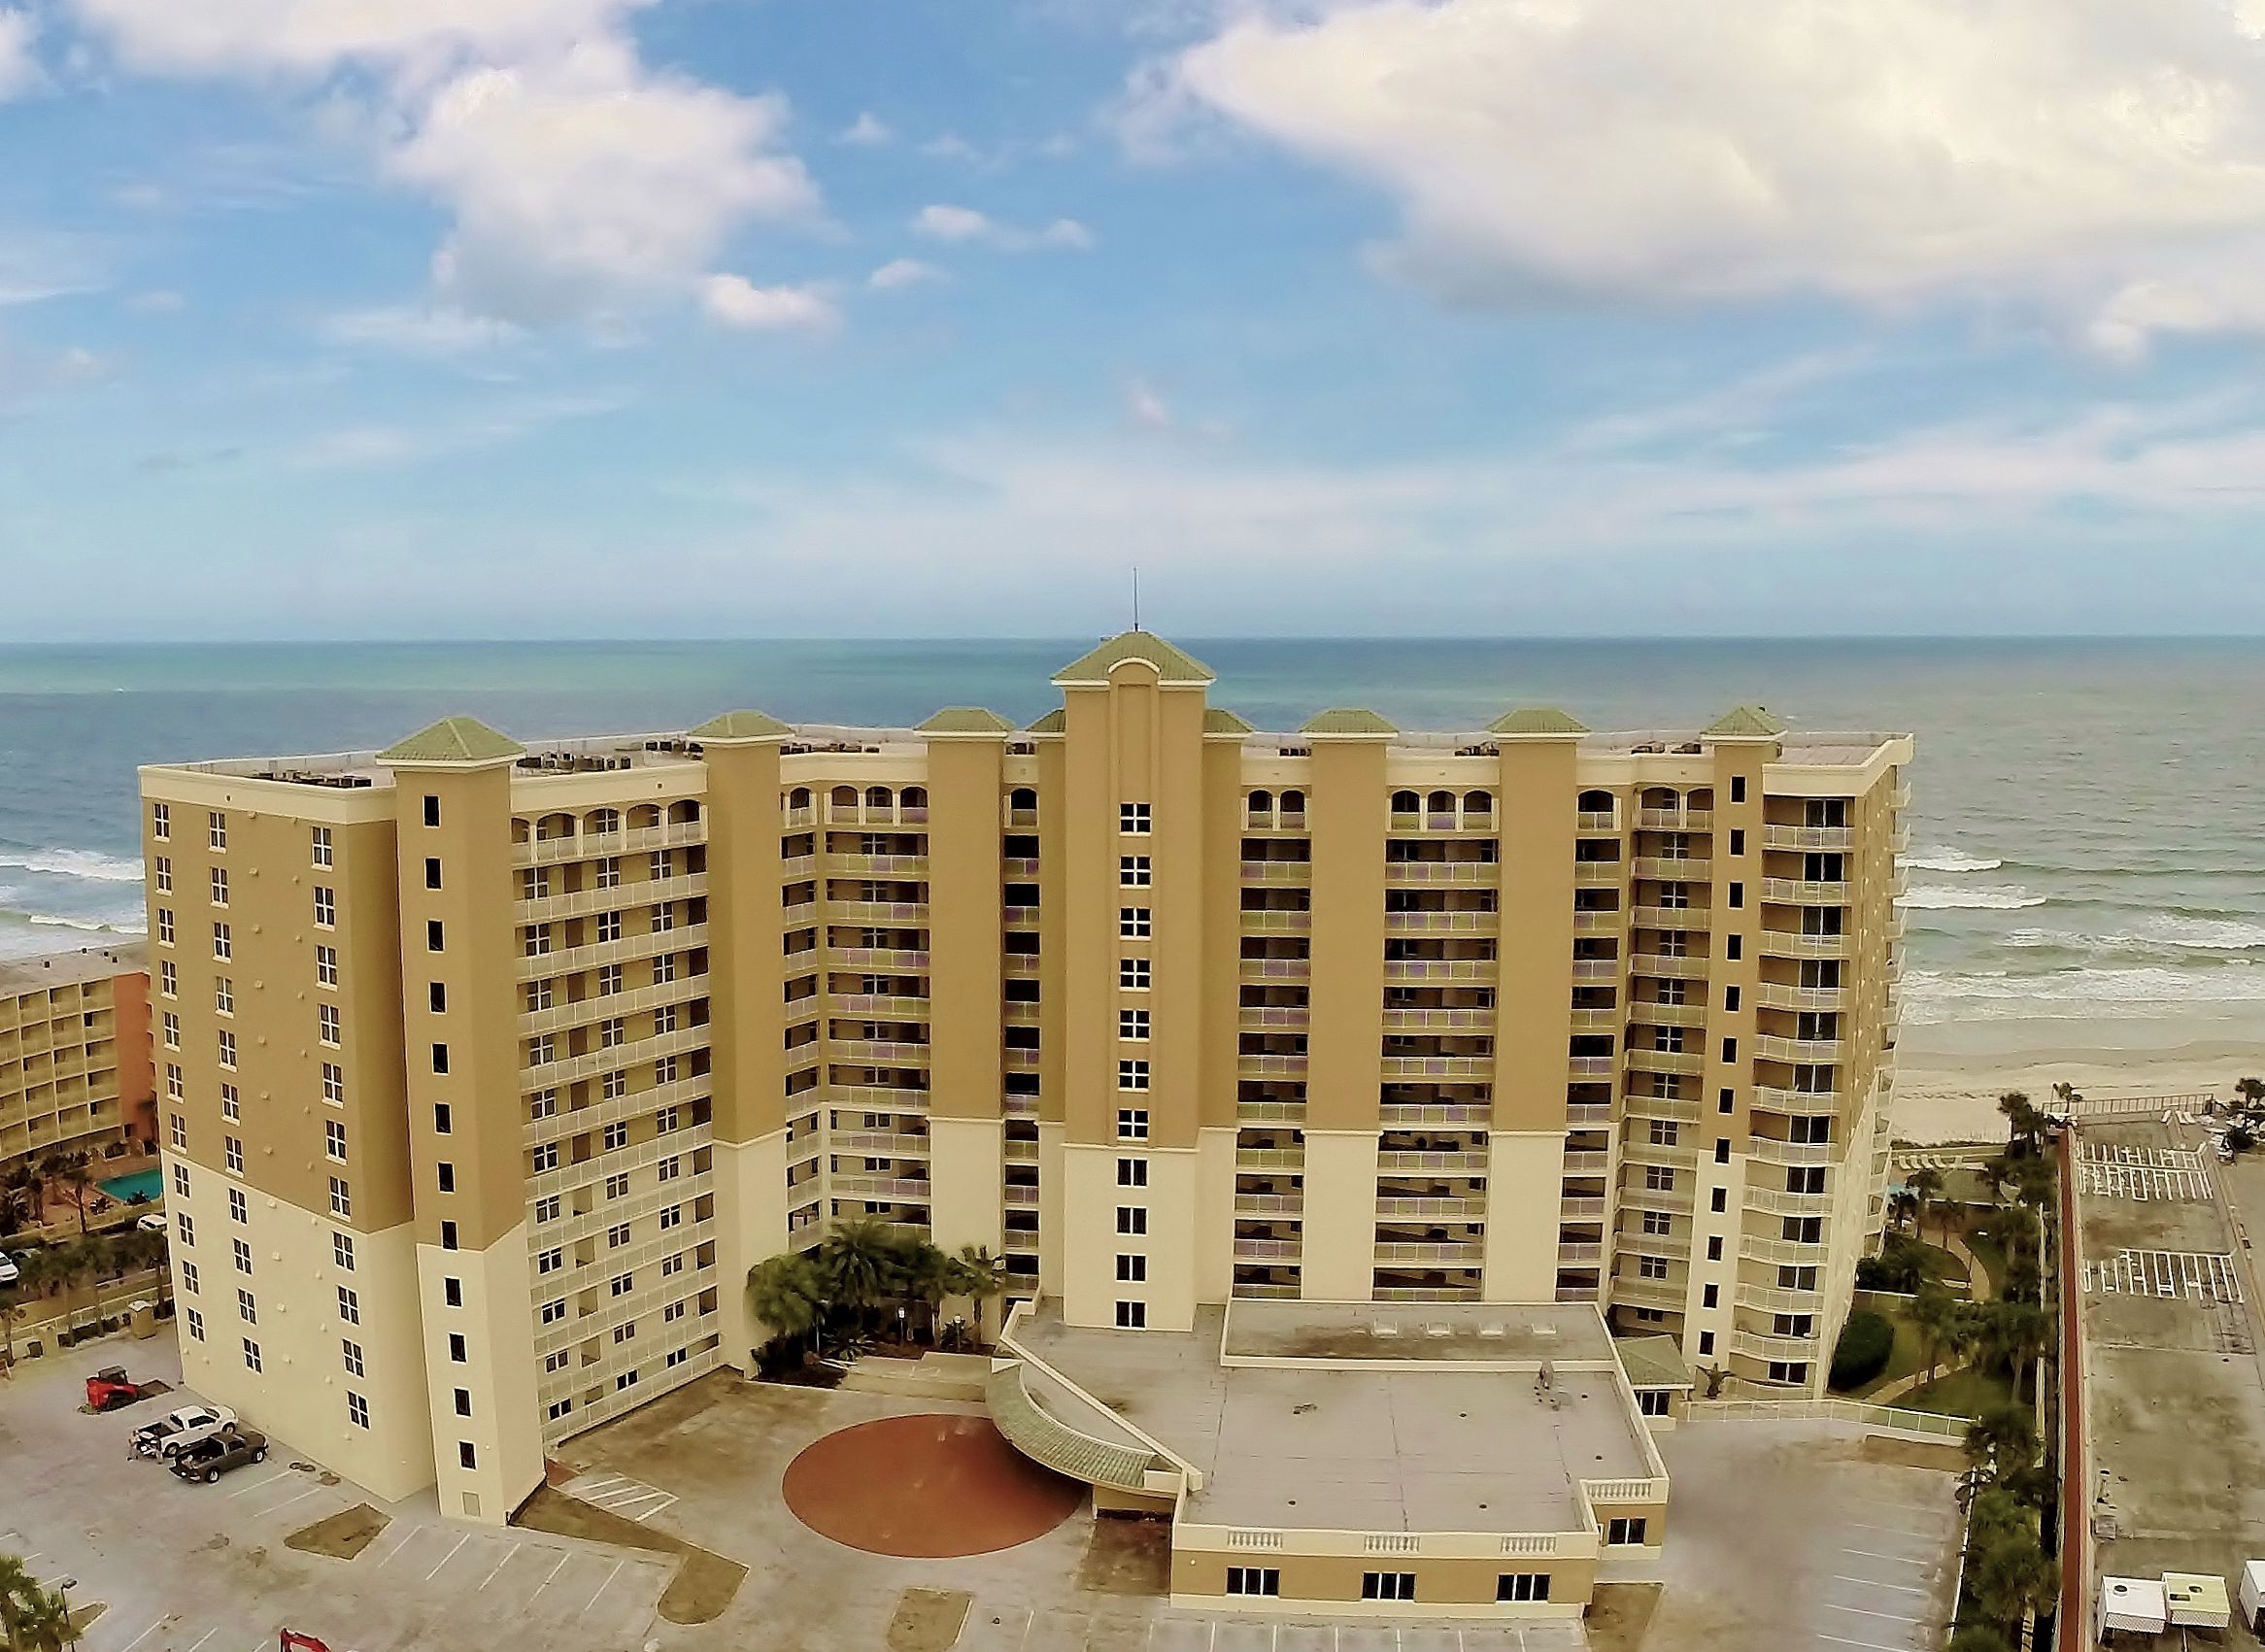 holidayinn cottage and inn en an holiday us beach rent cottages for daytona hotel suites hotels ihg hoteldetail oceanfront dabfl